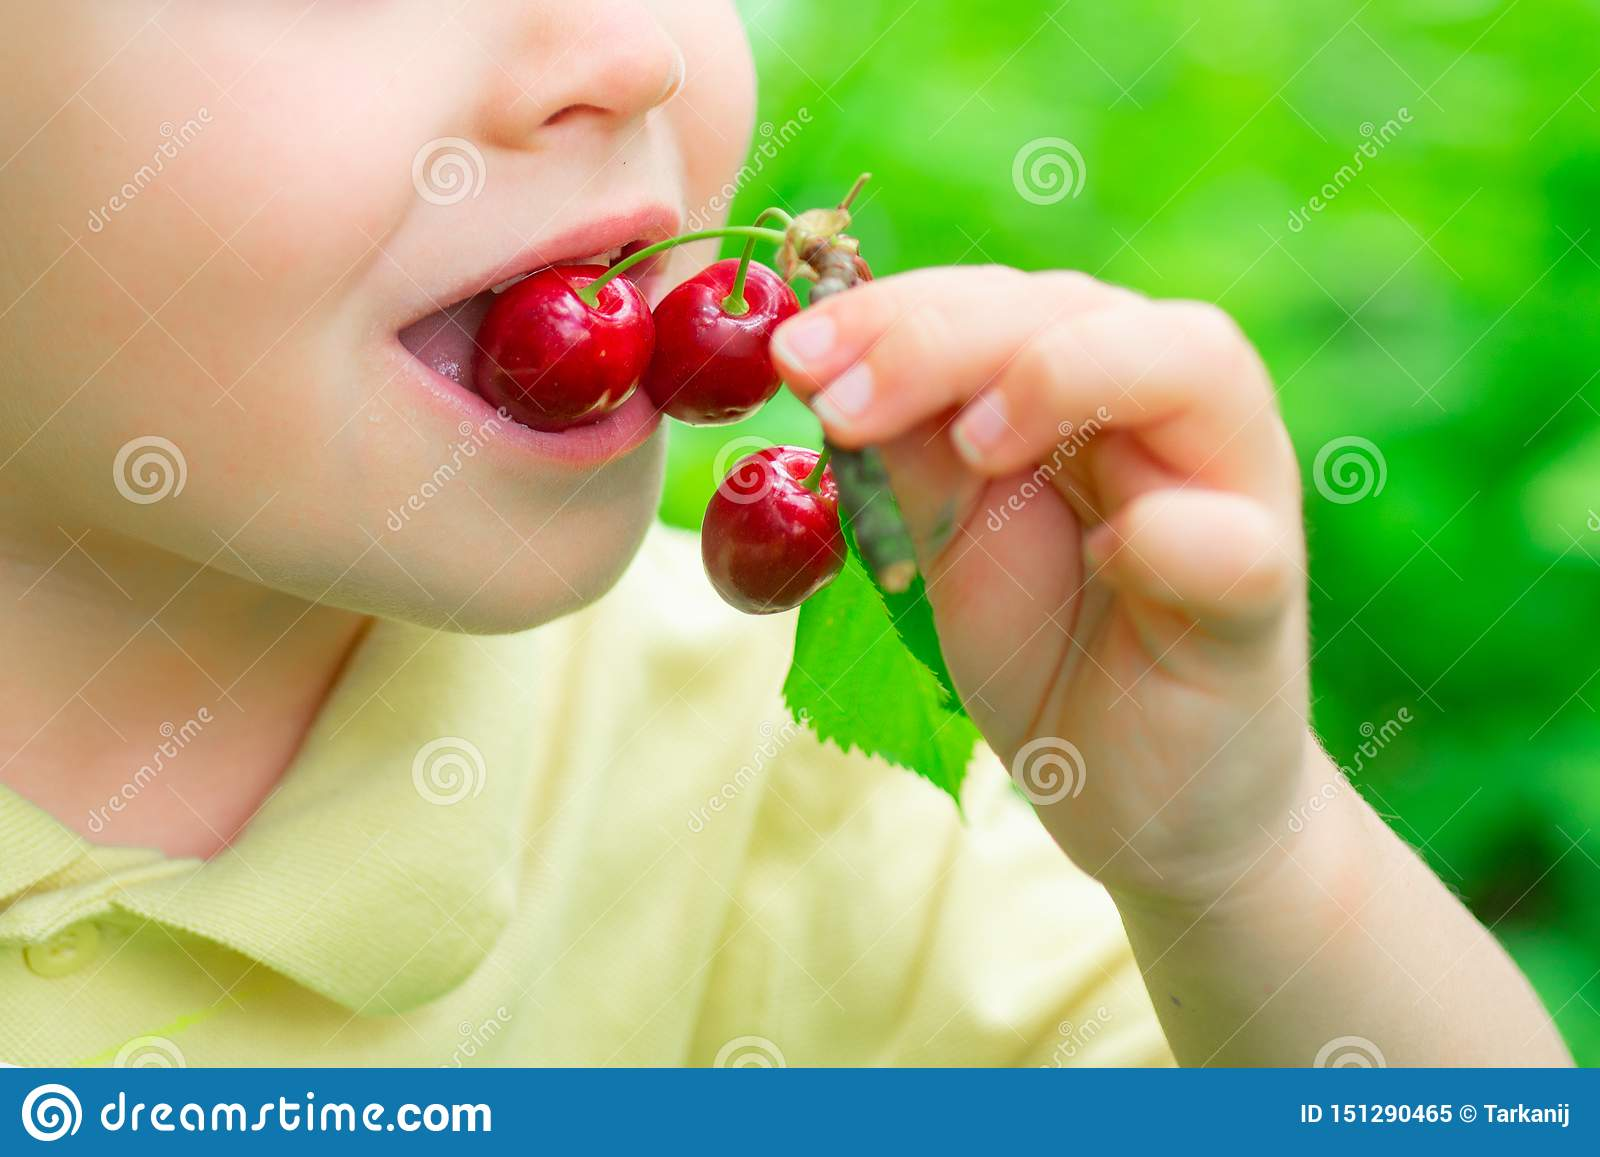 The child eats cherries. Healthy food. Fruits in the garden. Vitamins for children. Nature and harvest.